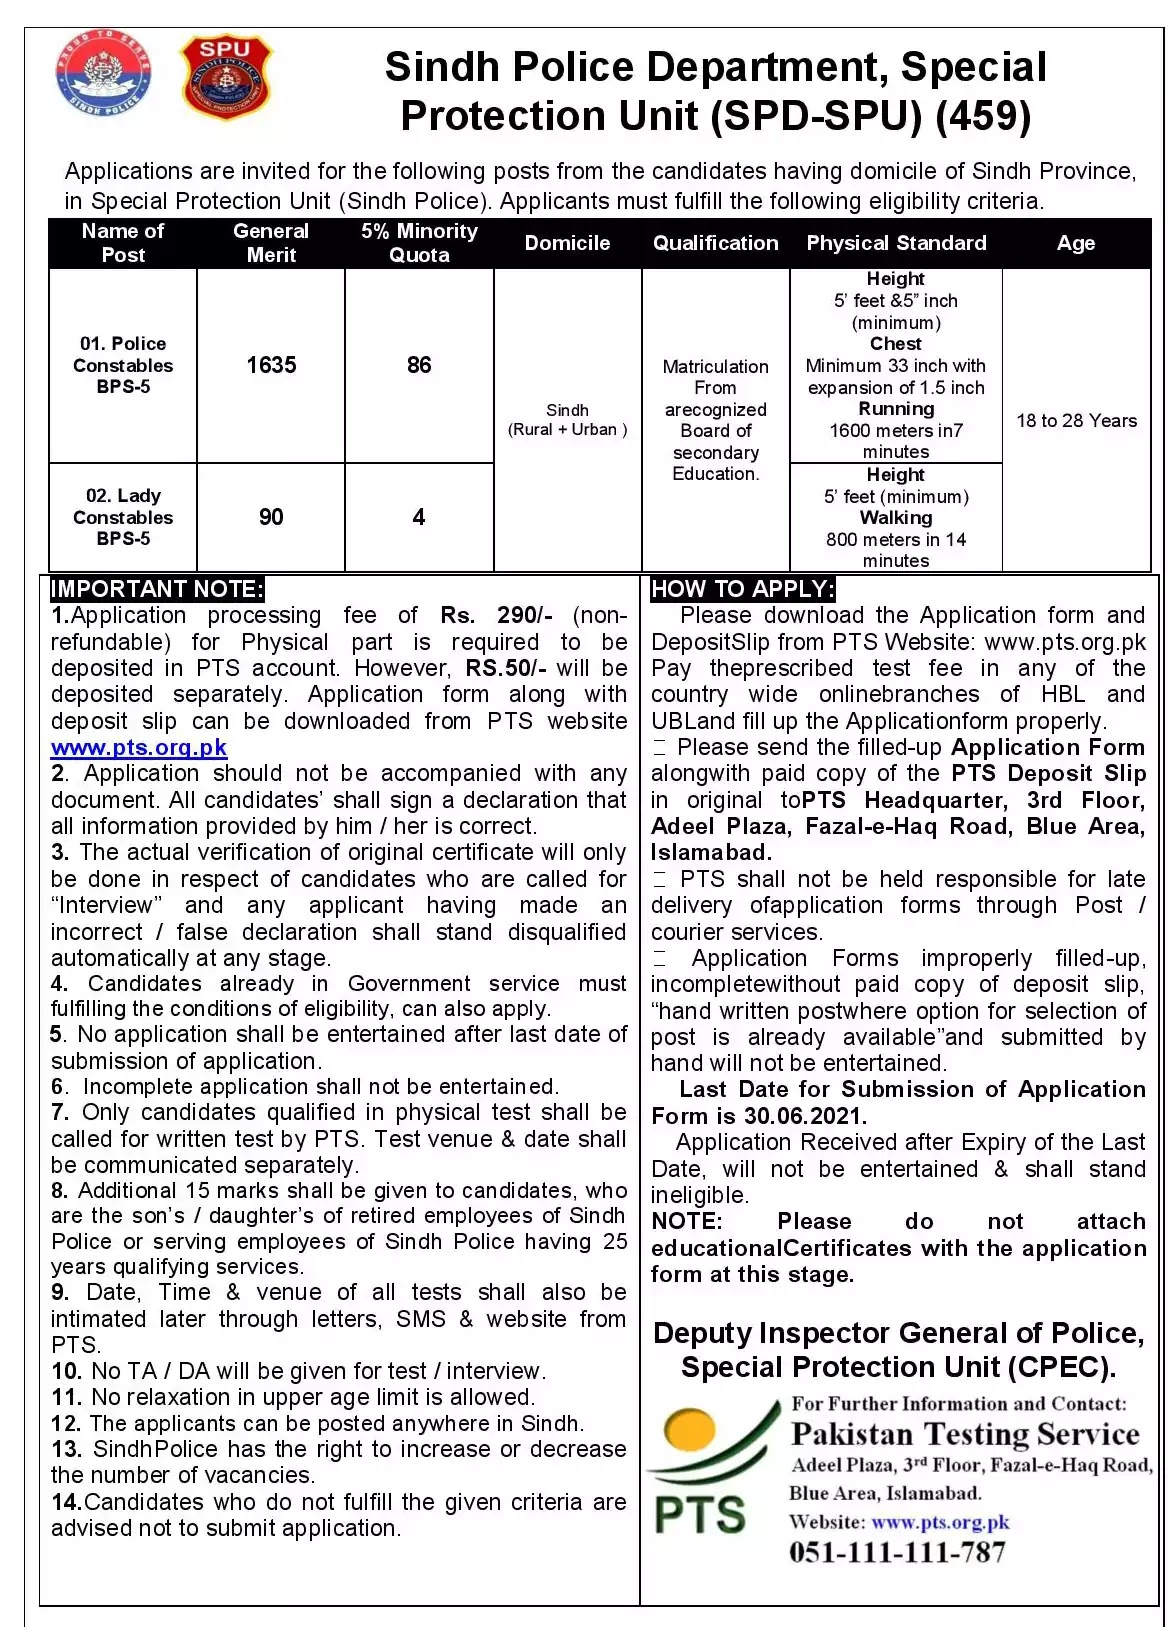 How to Apply For Sindh Police Department, Special Protection Unit (SPD-SPU) (459)